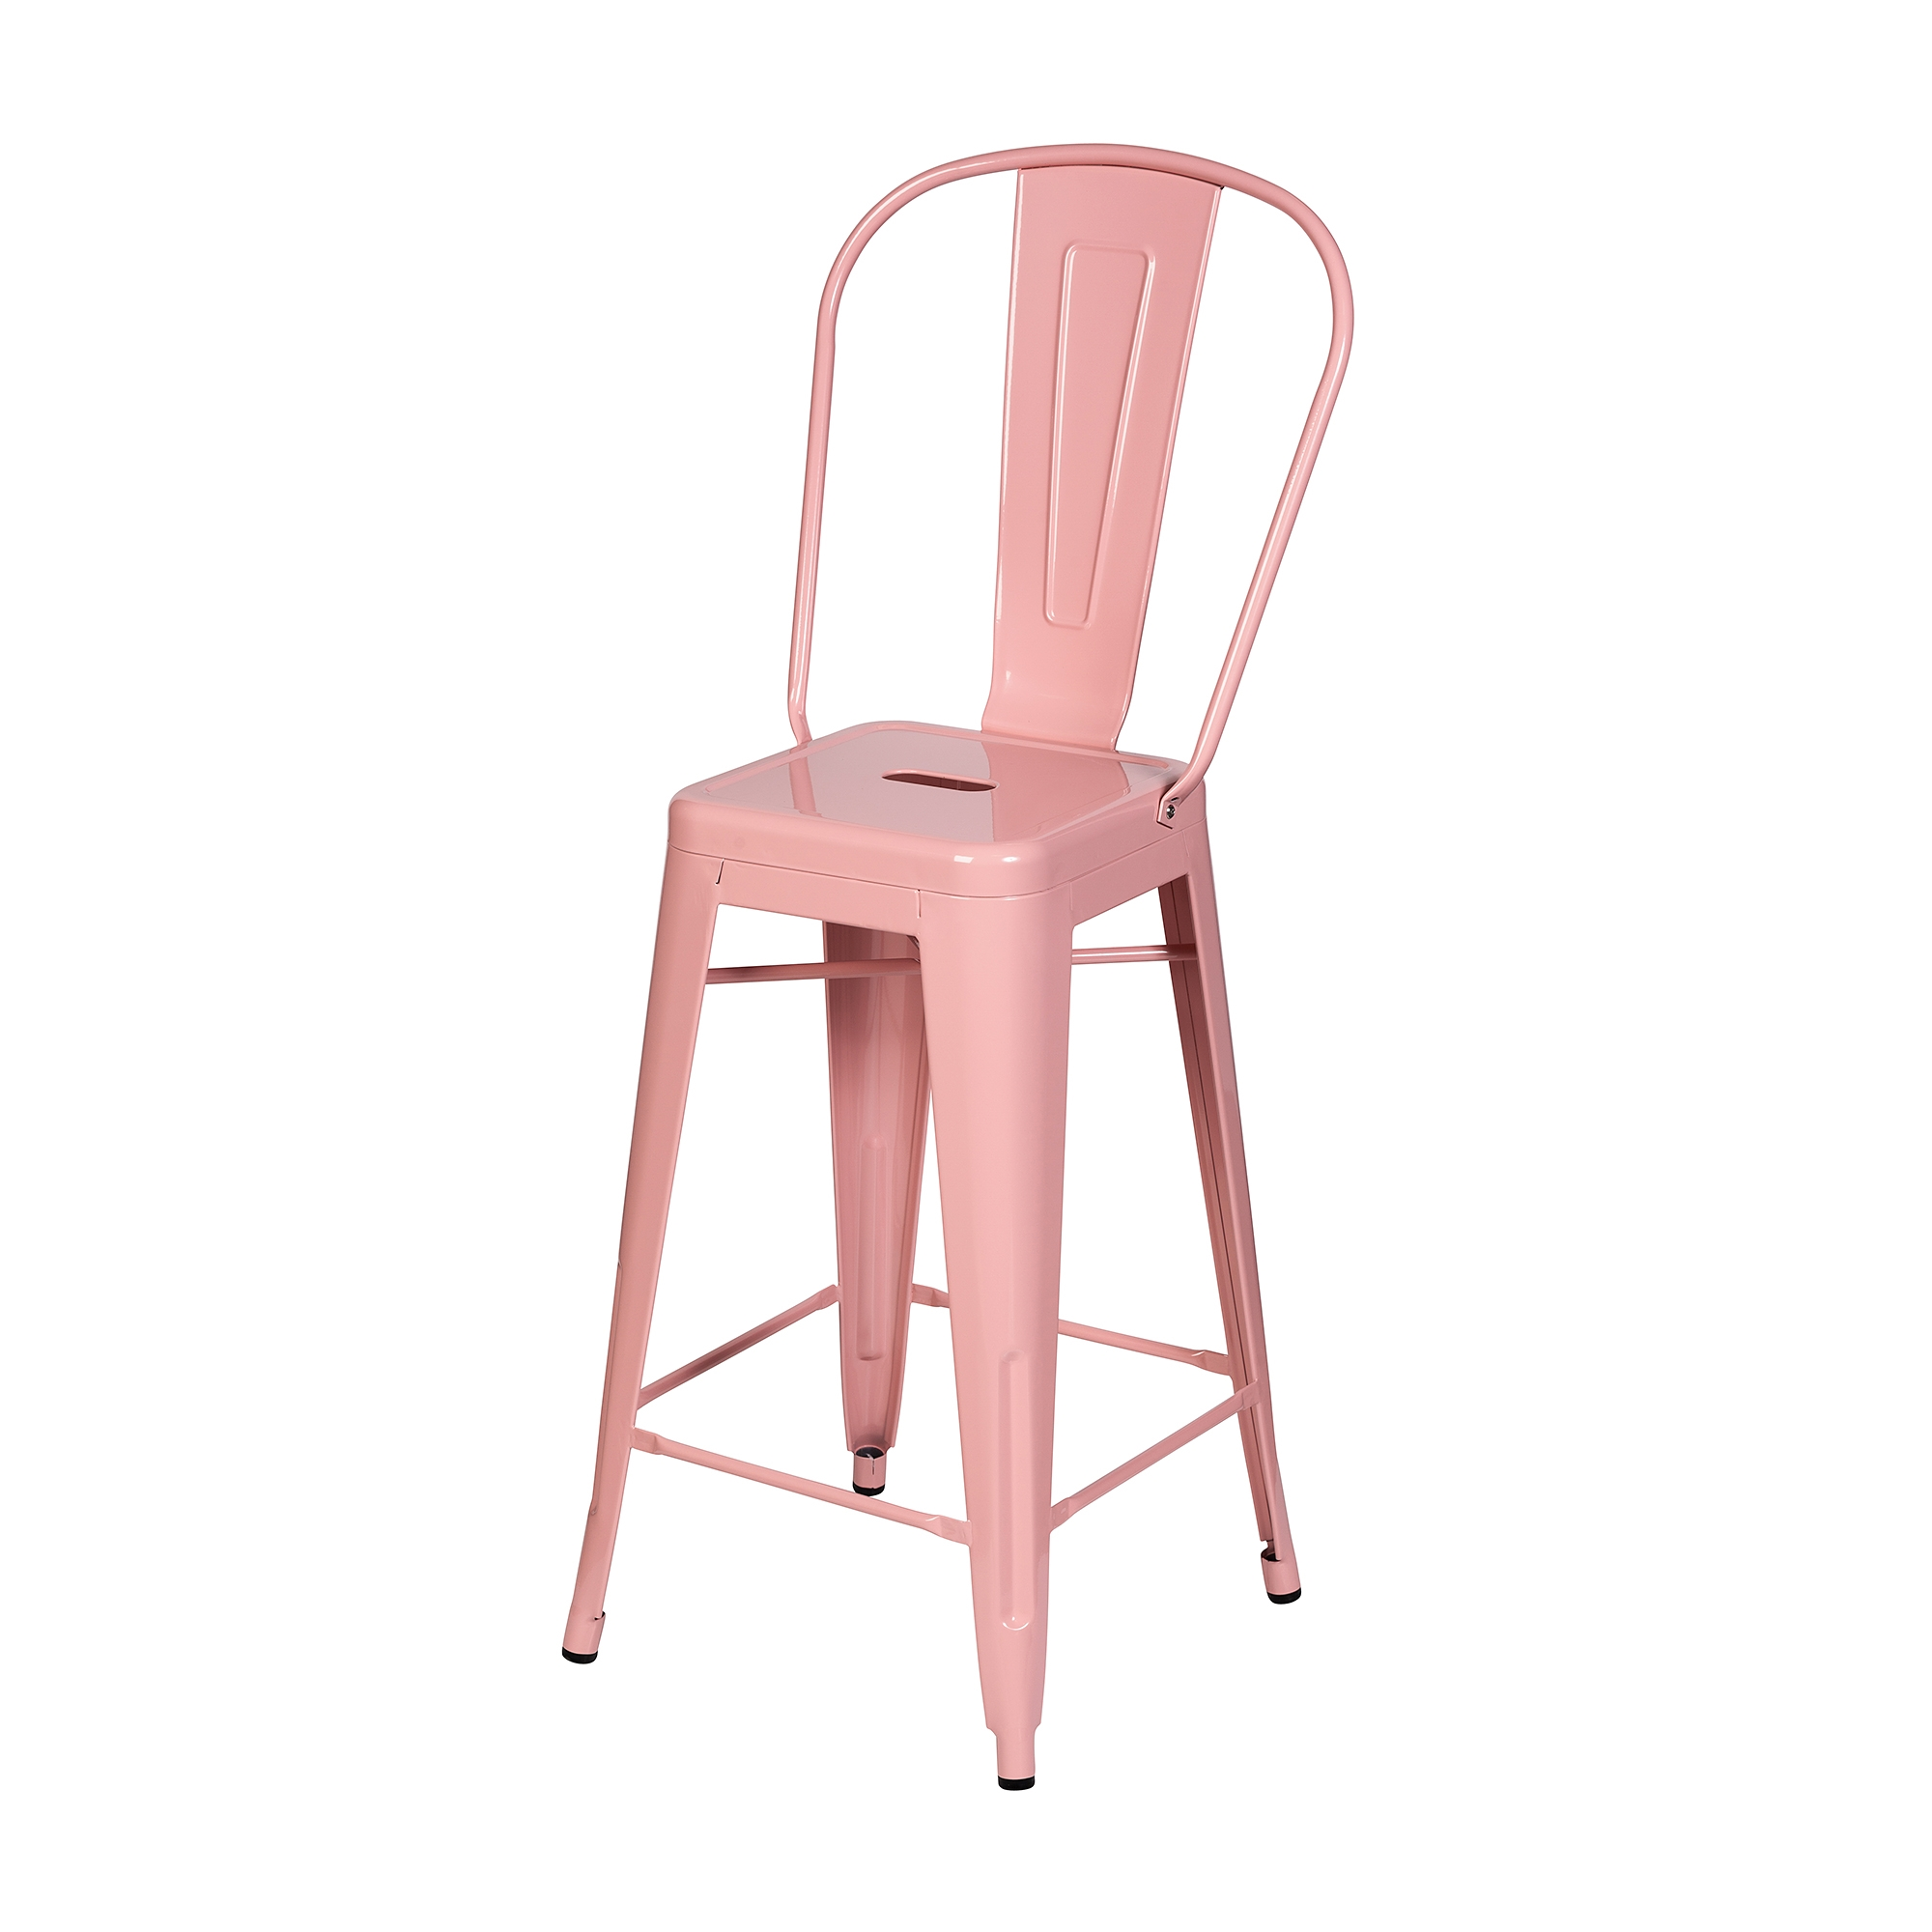 Bastille Counter Stool Pink Larger Photo Email A Friend